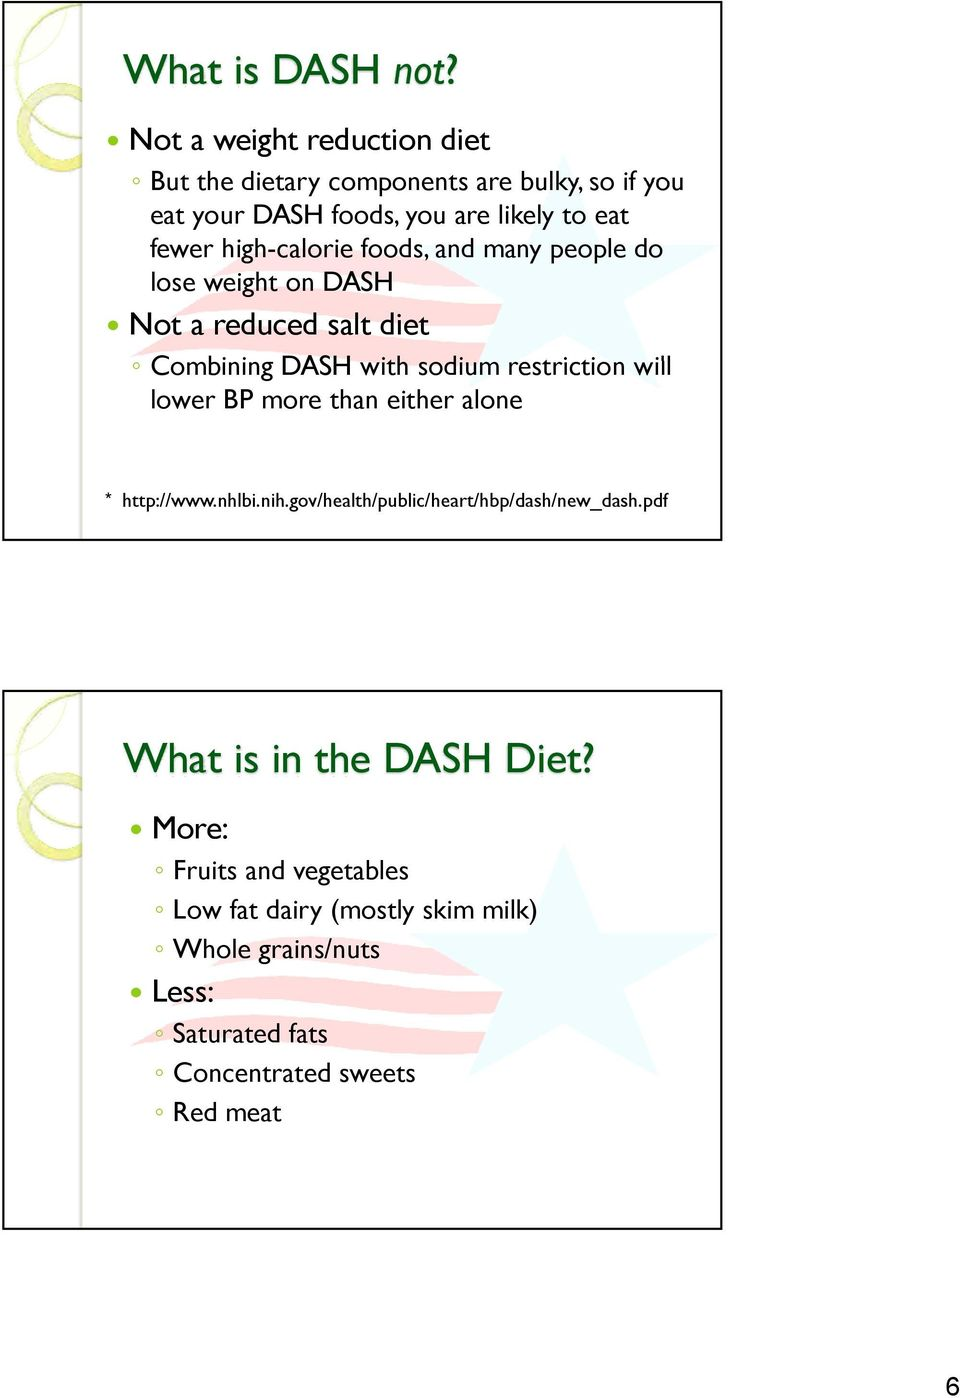 high-calorie foods, and many people do lose weight on DASH Not a reduced salt diet Combining i DASH with sodium restriction ti will